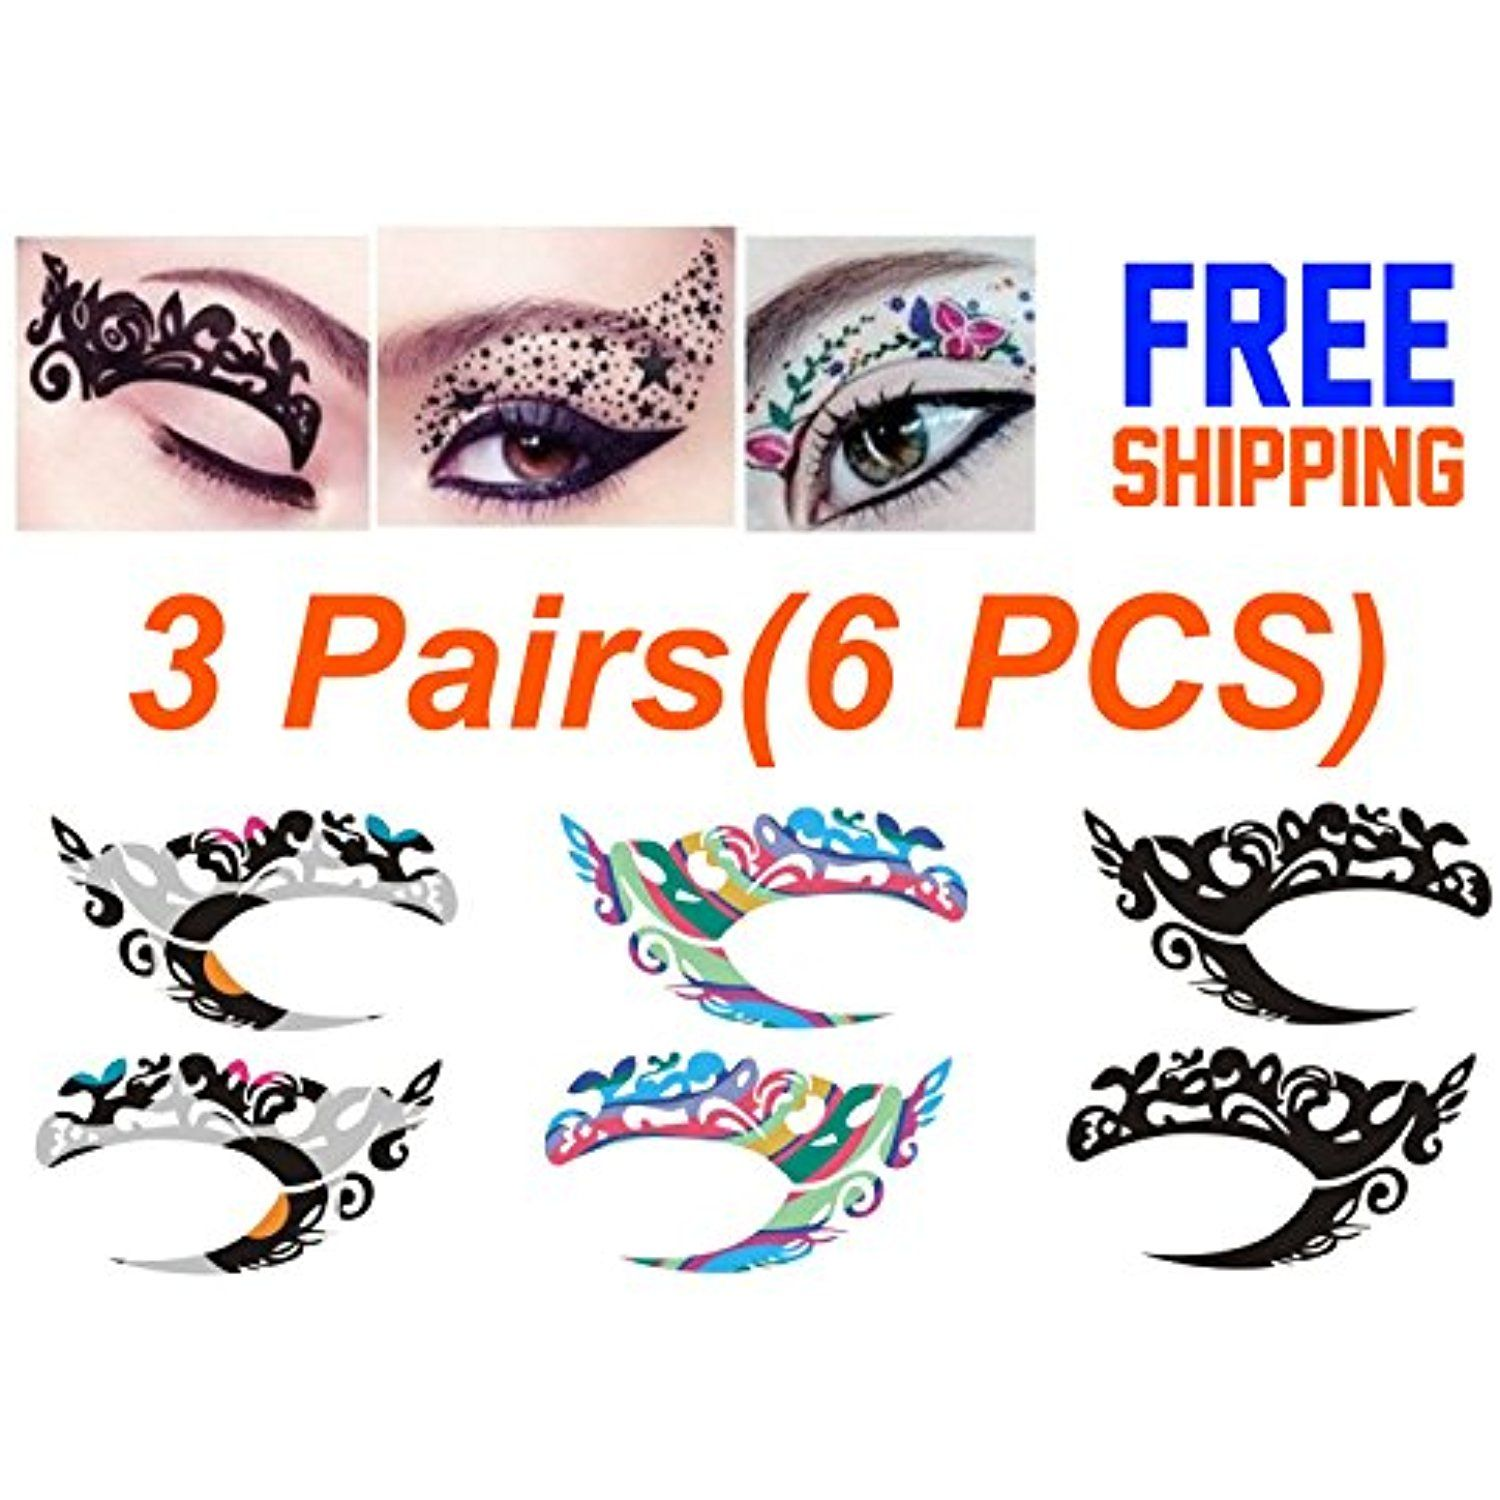 Temporary Eye Tattoo 3 Pairs(6PCS) Different Models